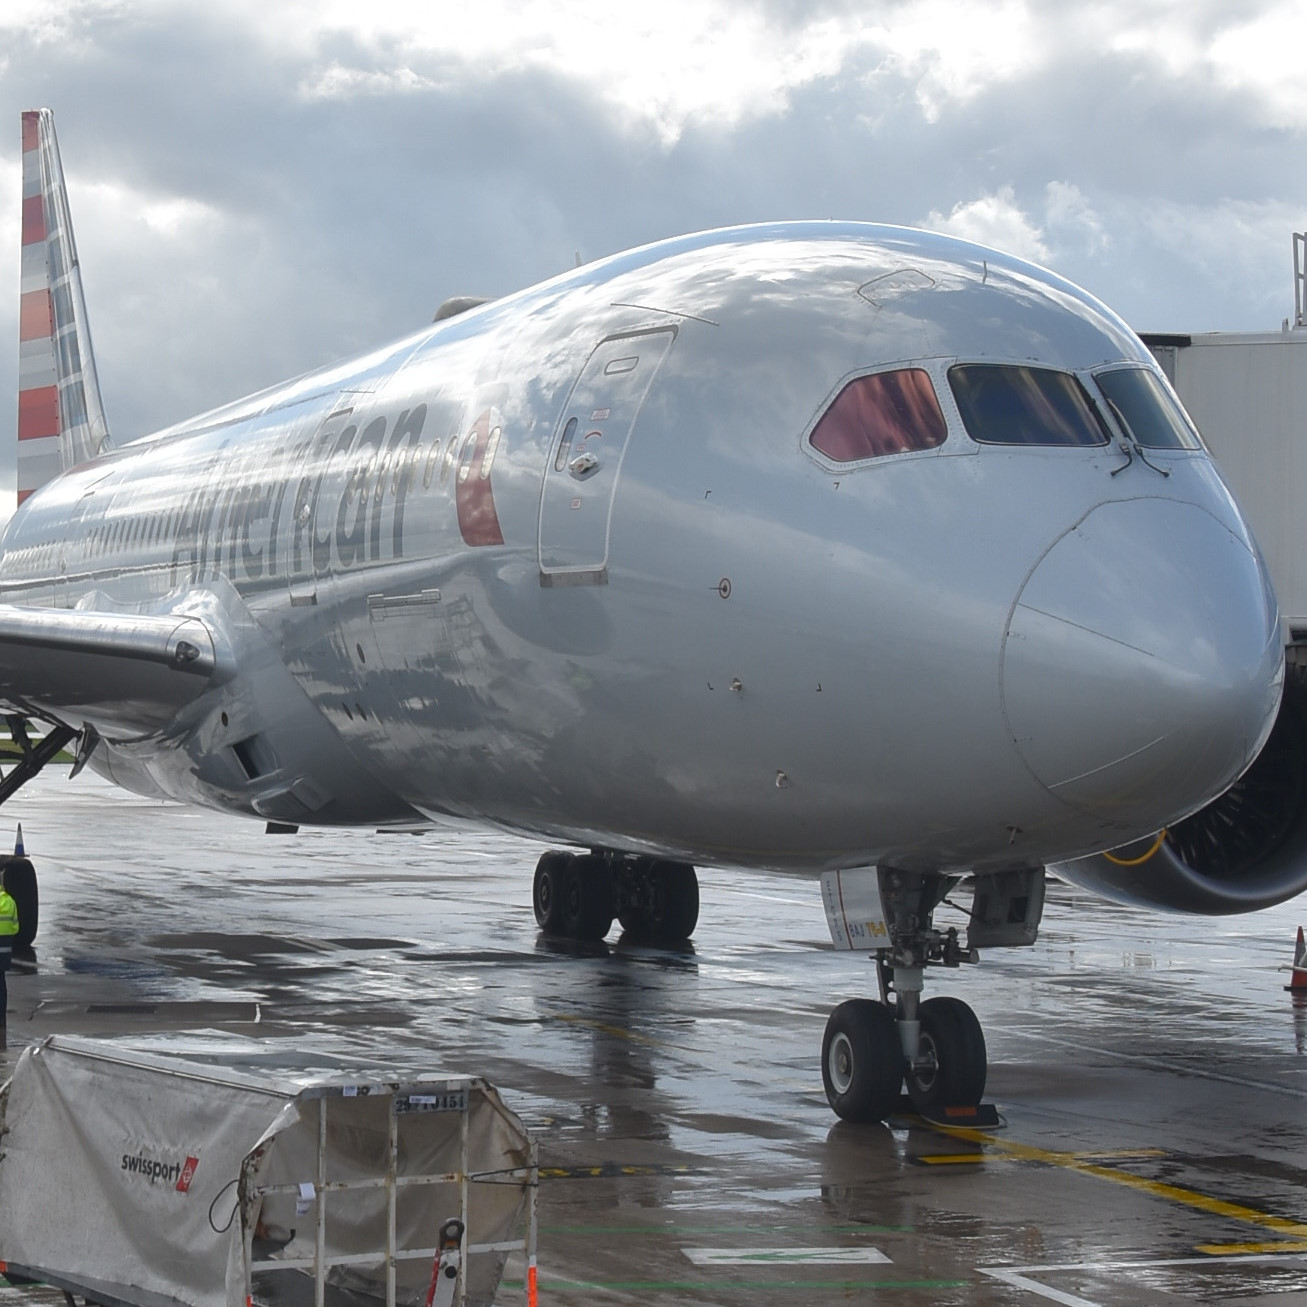 My very shiny-looking American Airlines Boeing 787-800 at the gate at Manchester Airport, Terminal 3, waiting to take me to Chicago.